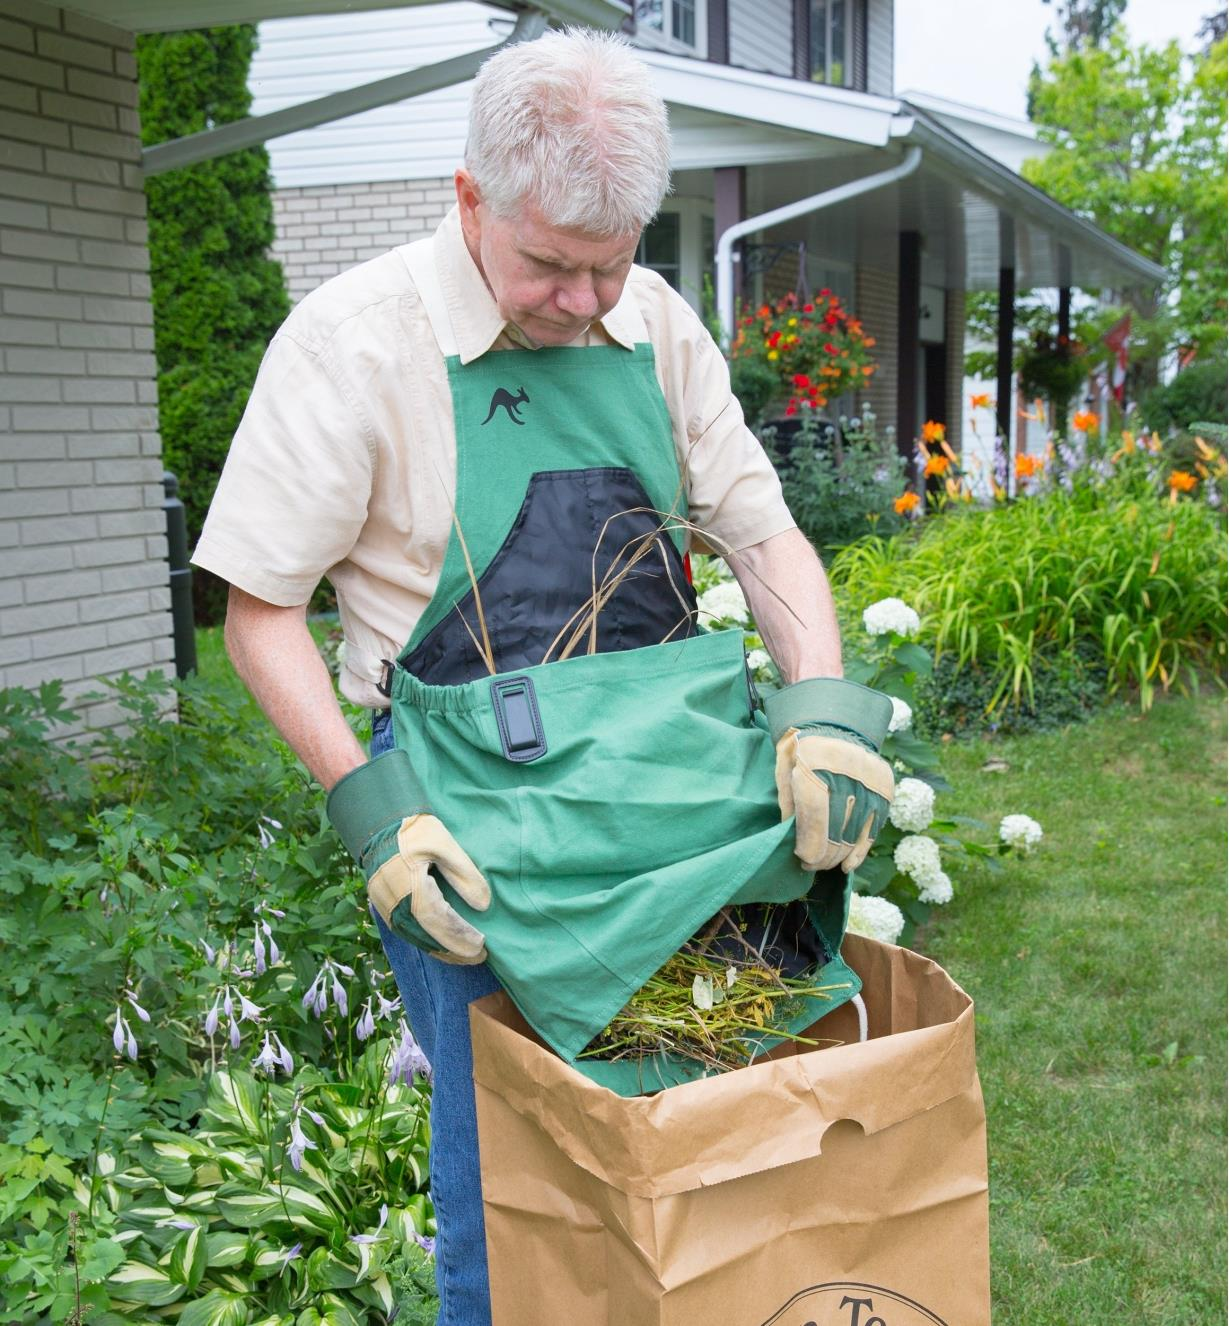 A man wearing the kangaroo pocket apron dumps garden waste from the pocket into a paper bag